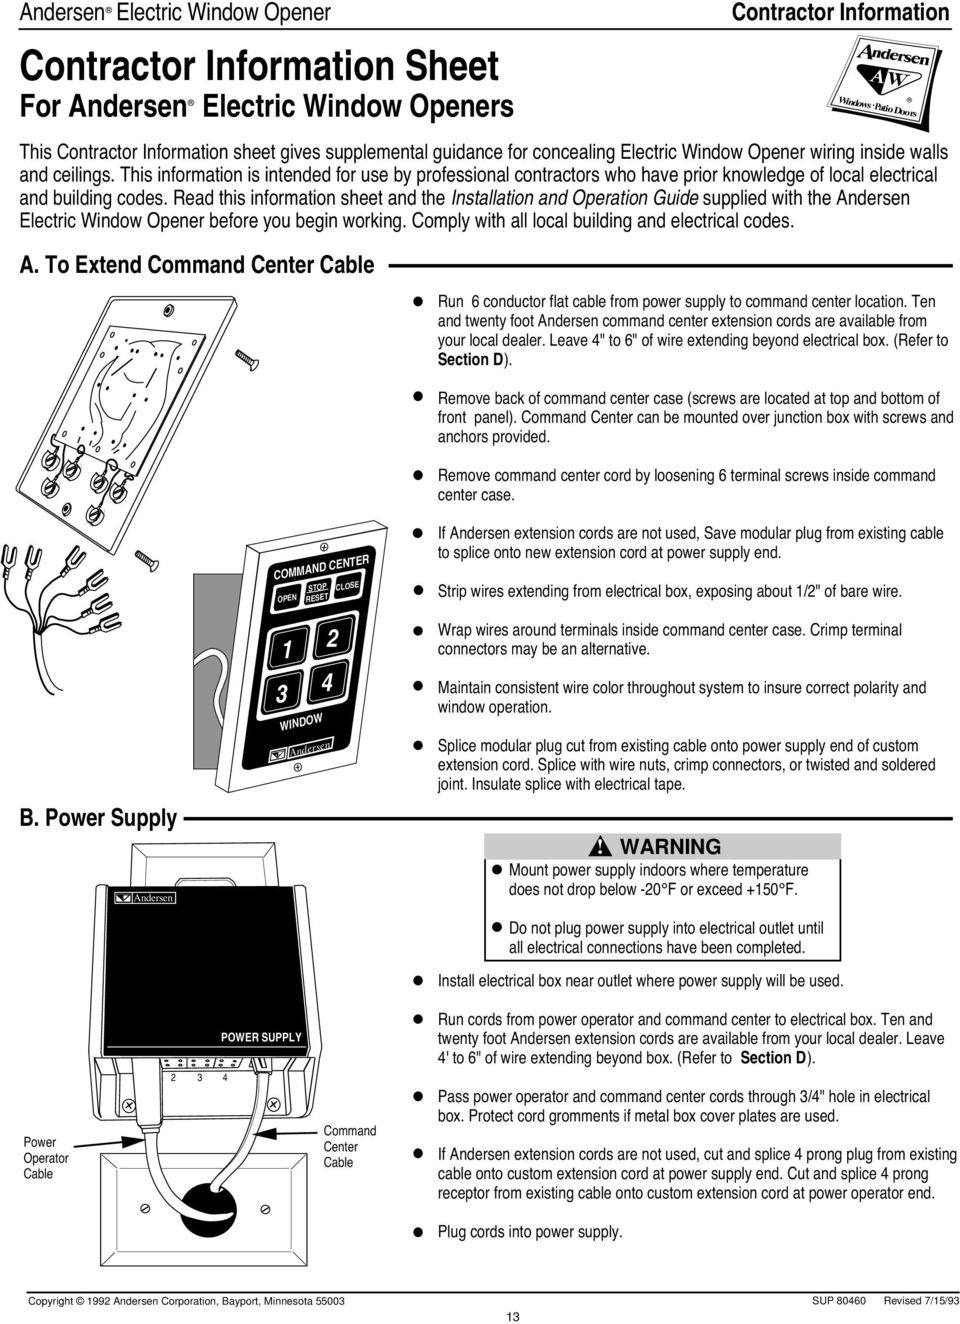 Read this information sheet and the supplied with the Electric Window Opener before you begin working. Comply with all local building and electrical codes. P t D o o rs A.